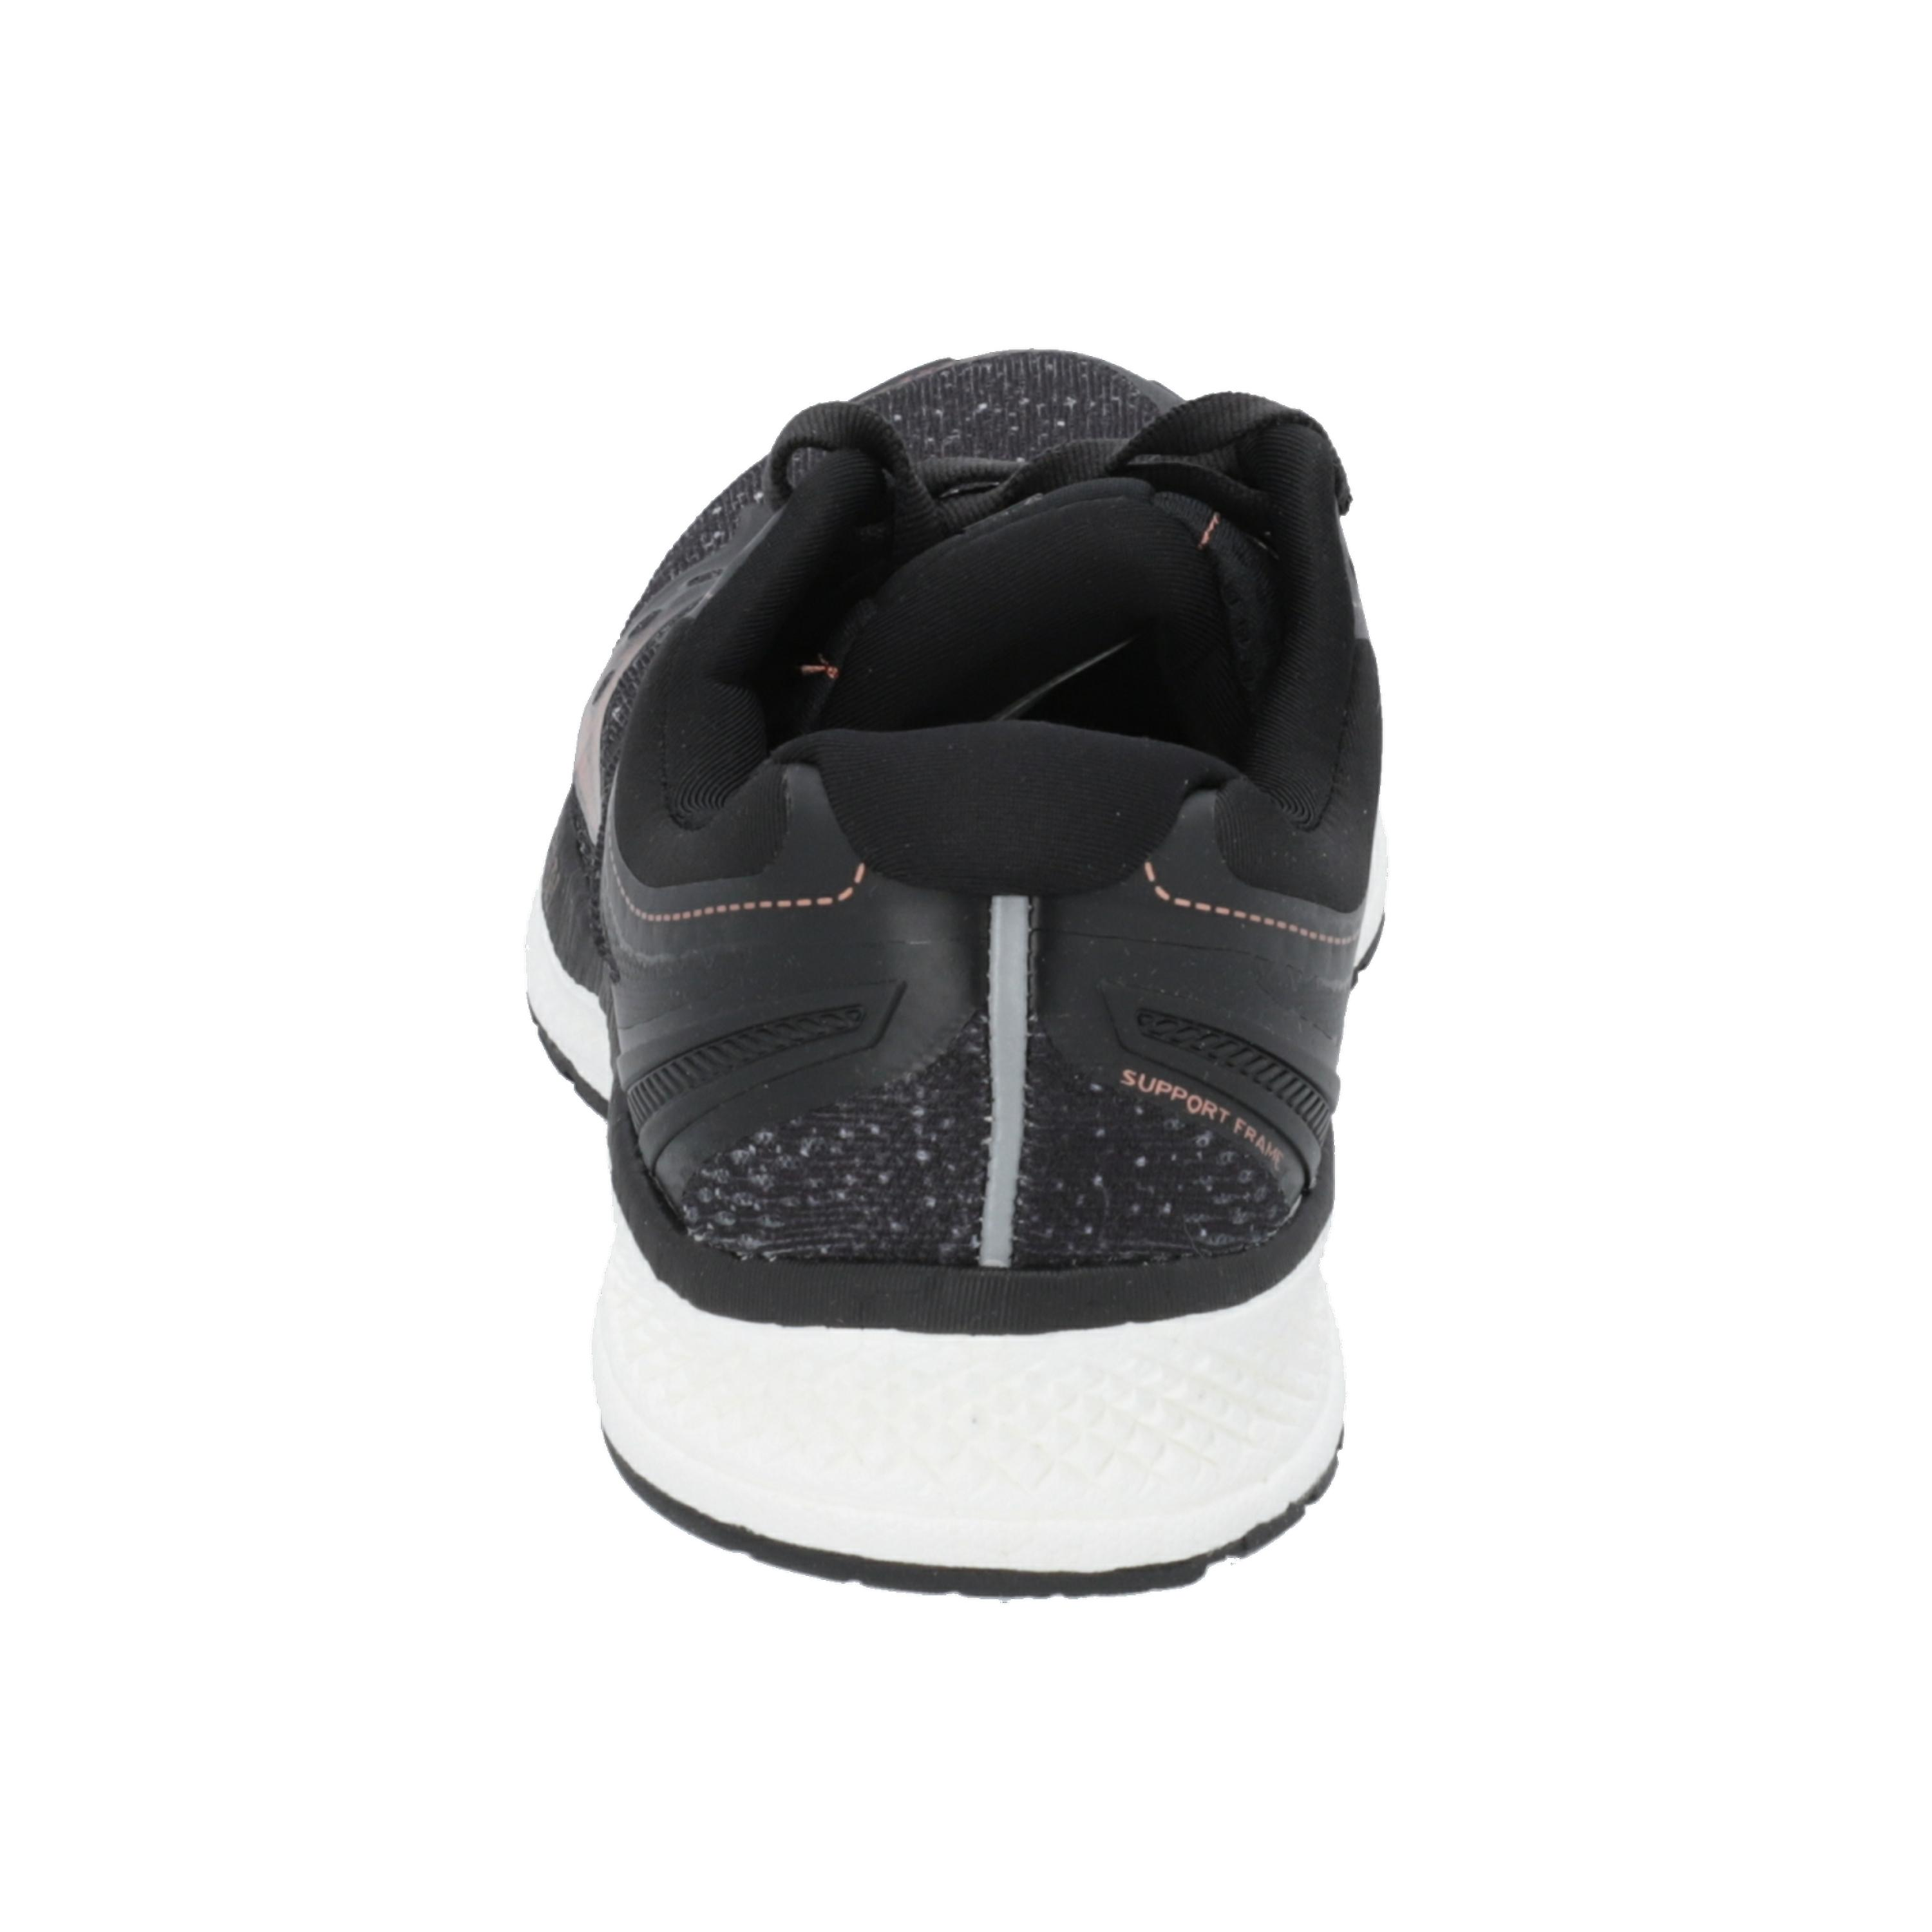 Saucony Triumph ISO 4 Women's Sports Shoes Grey Sneaker Turn Shoes